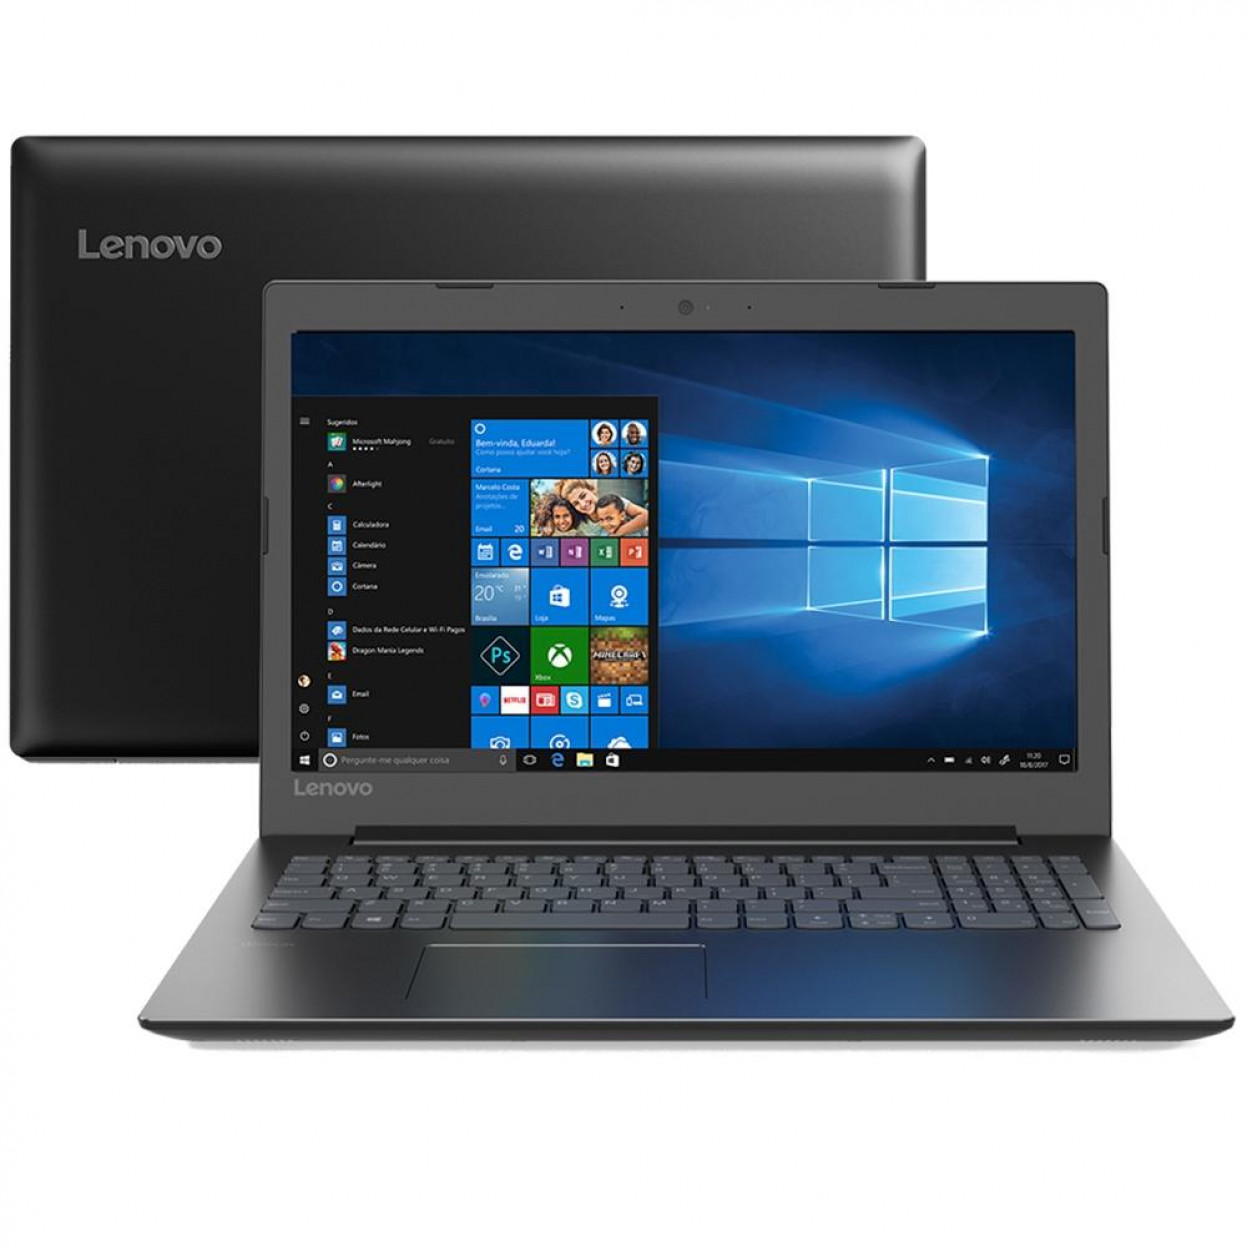 Notebook Lenovo B330 Core I5 8250u Memoria 4gb Ddr4 Ssd 120gb Tela 15.6' Fhd Windows 10 Home